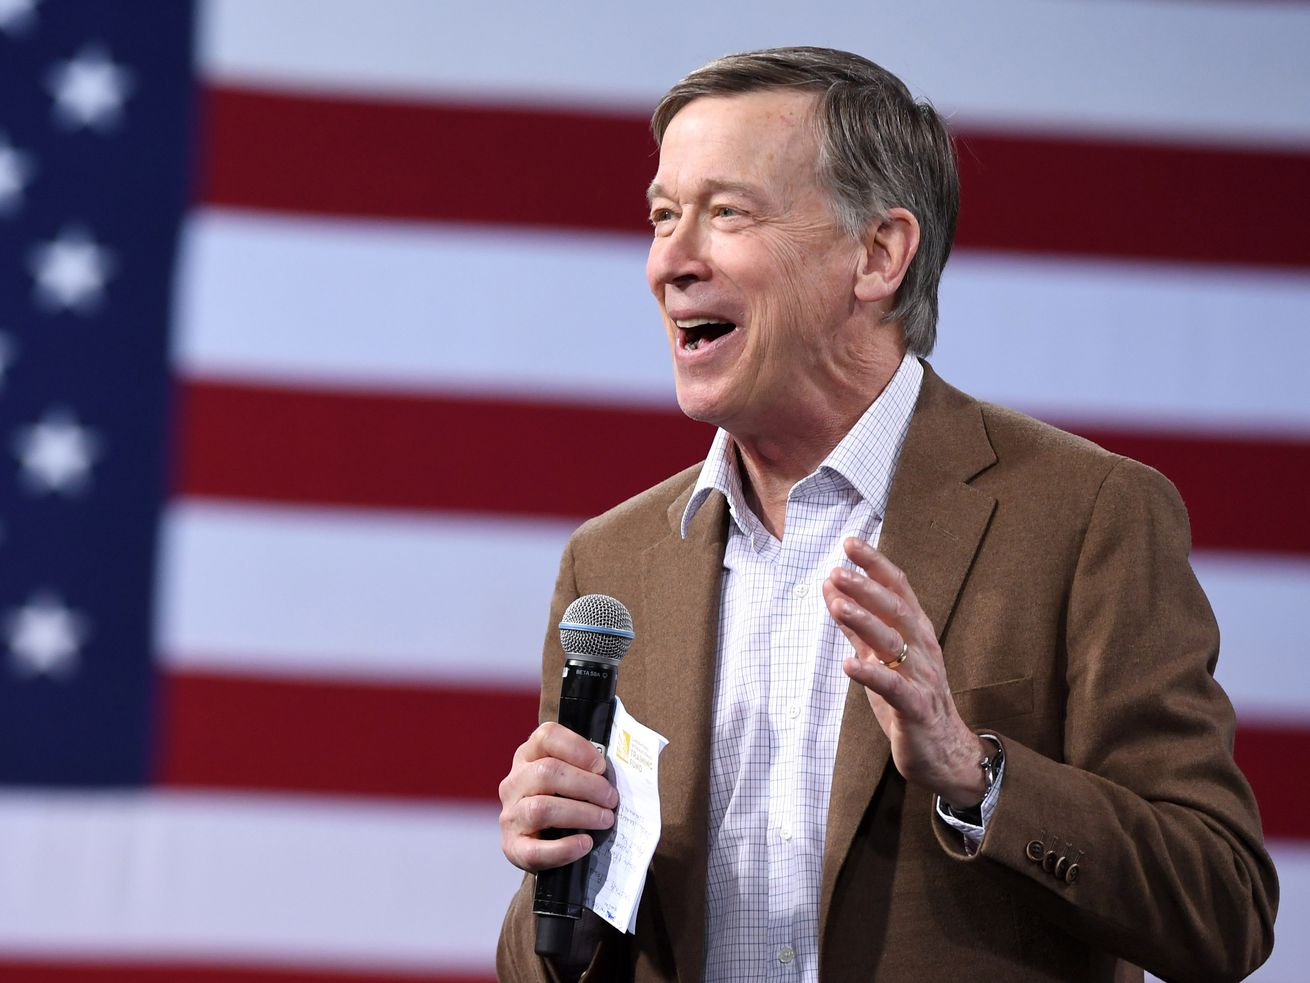 Former Colorado Gov. John Hickenlooper speaks at the National Forum on Wages and Working People in April in Las Vegas.